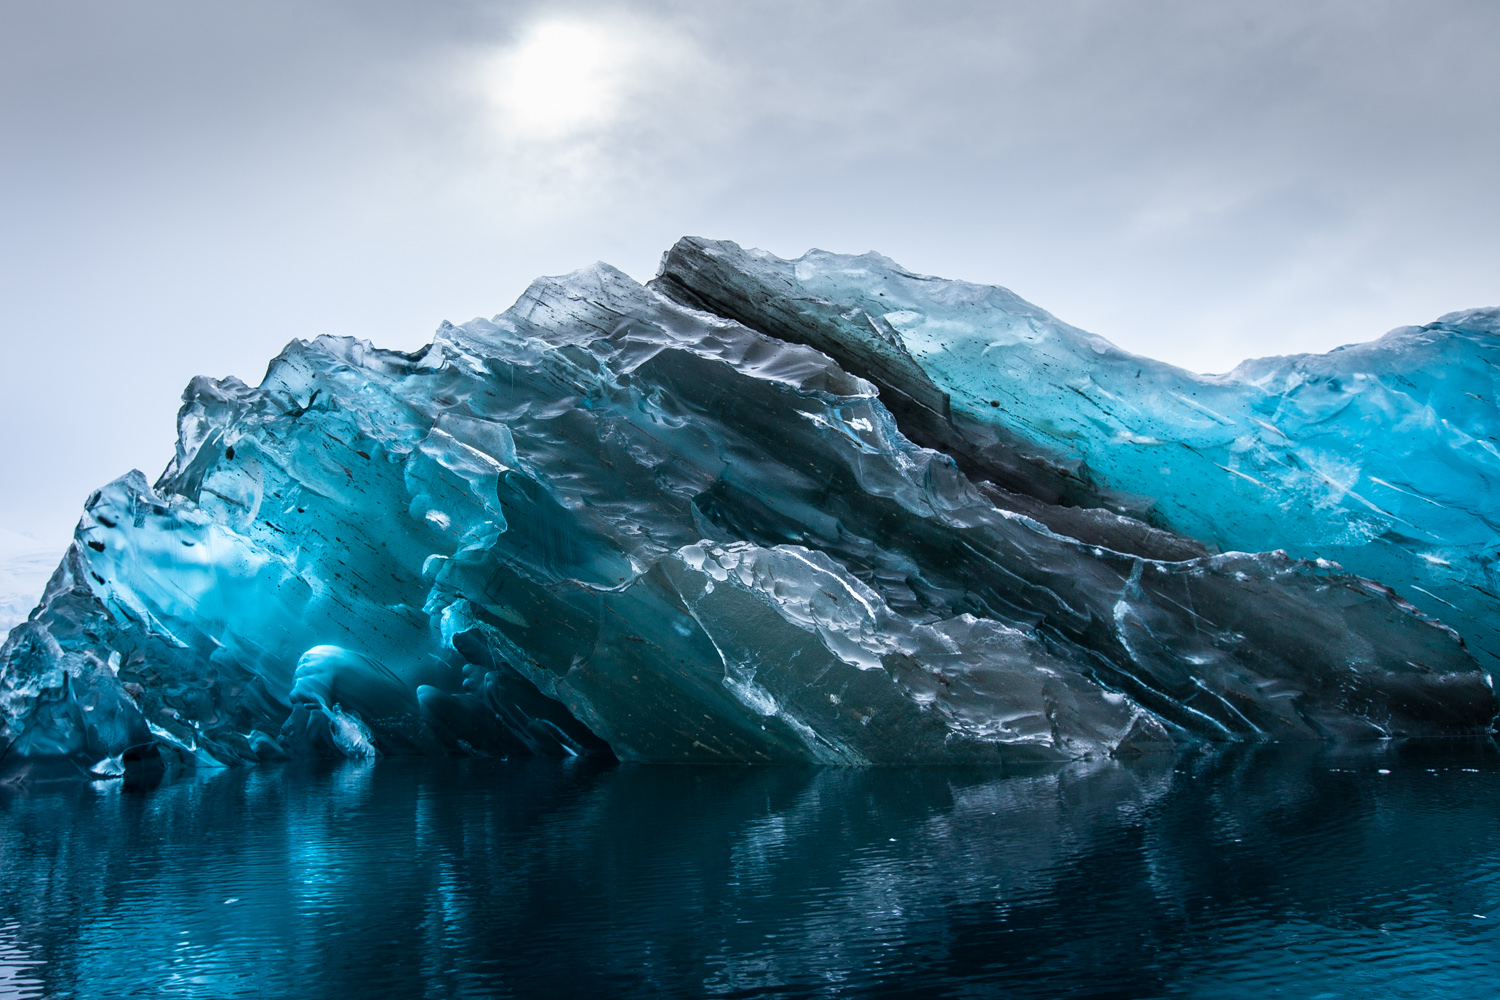 A Rare Flipped Iceberg in Antarctica Photographed by Alex Cornell